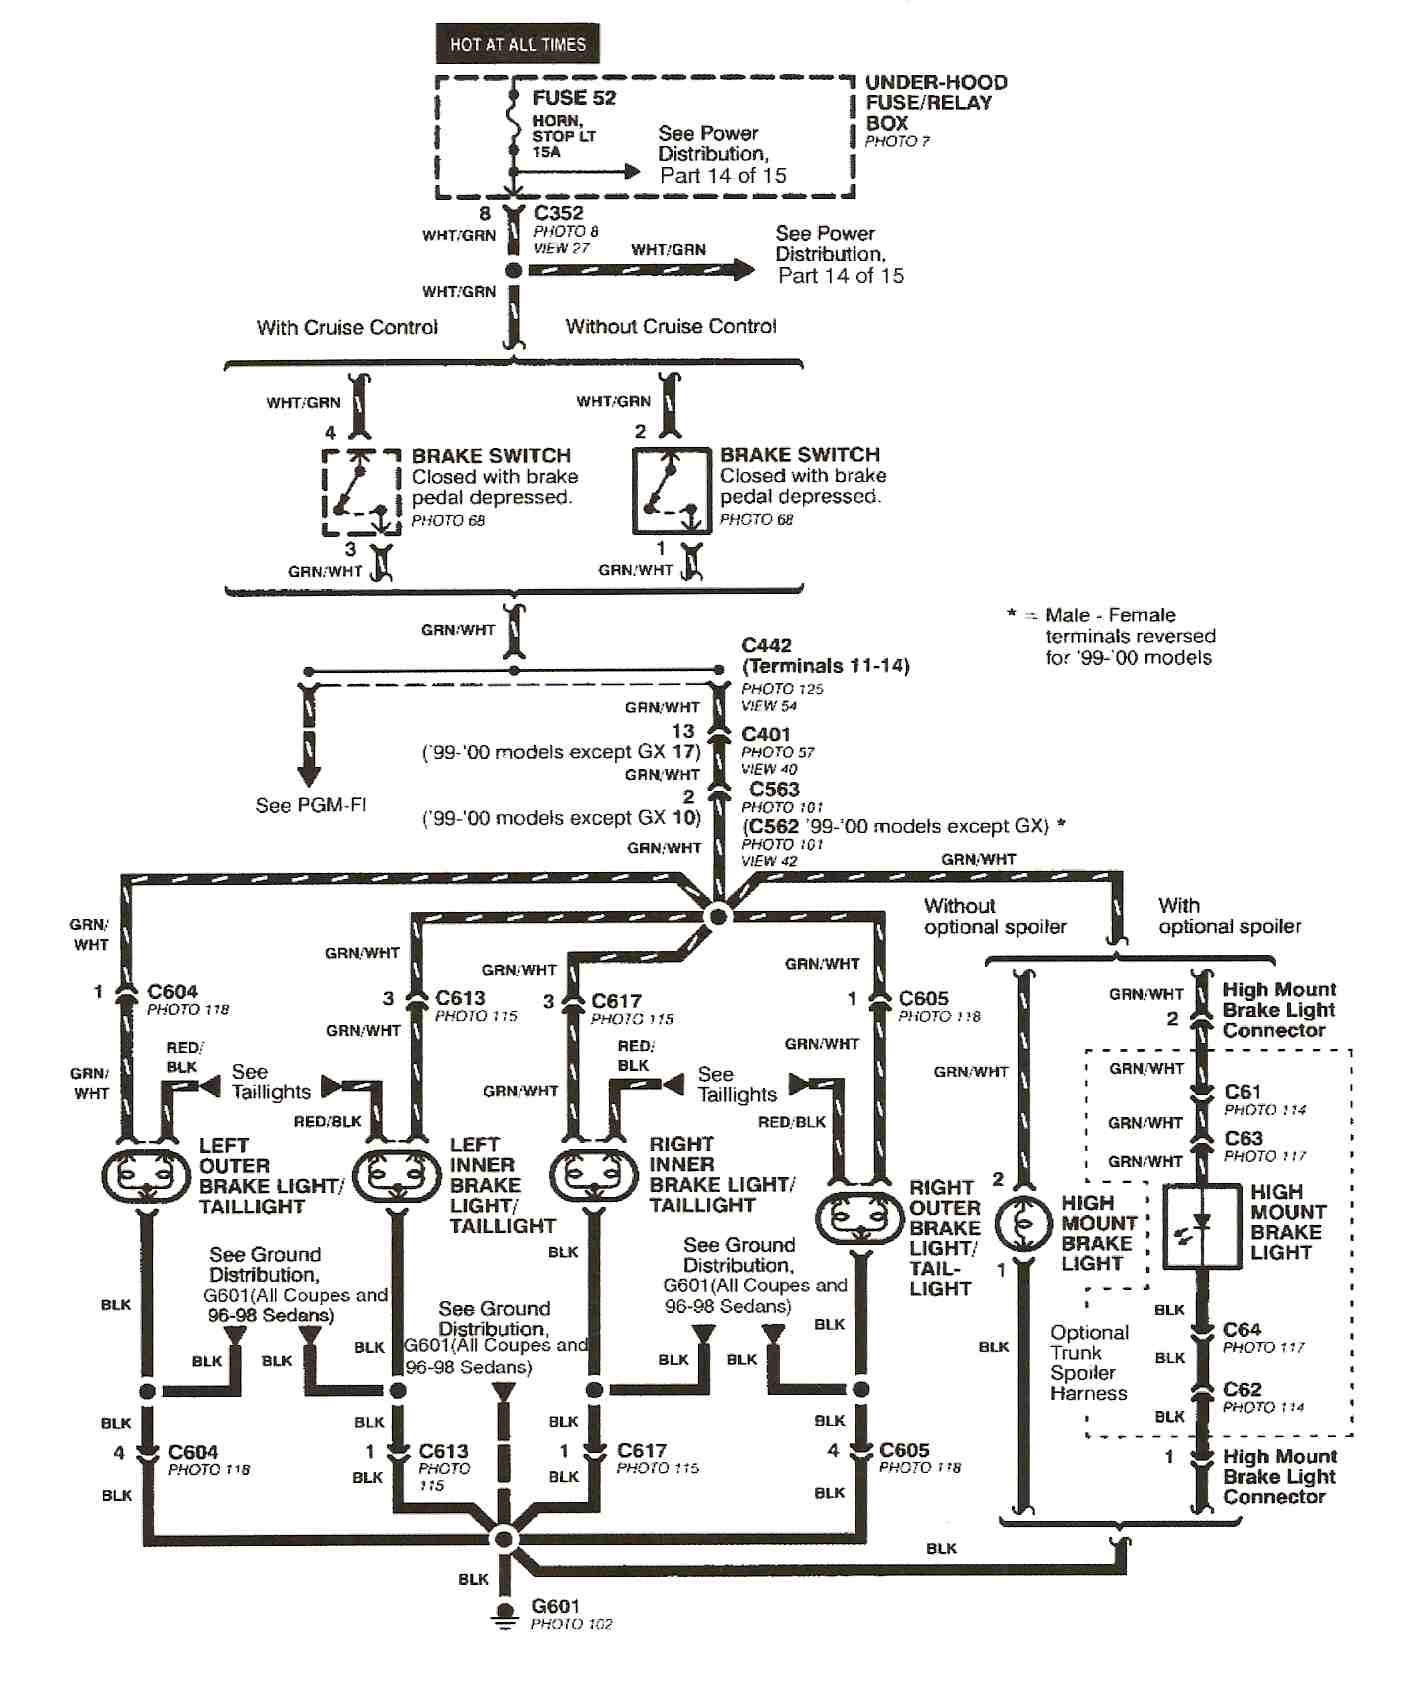 hight resolution of 1997 honda civic electrical wiring diagram 2000 honda civic alarm wiring diagram 2000 honda civic